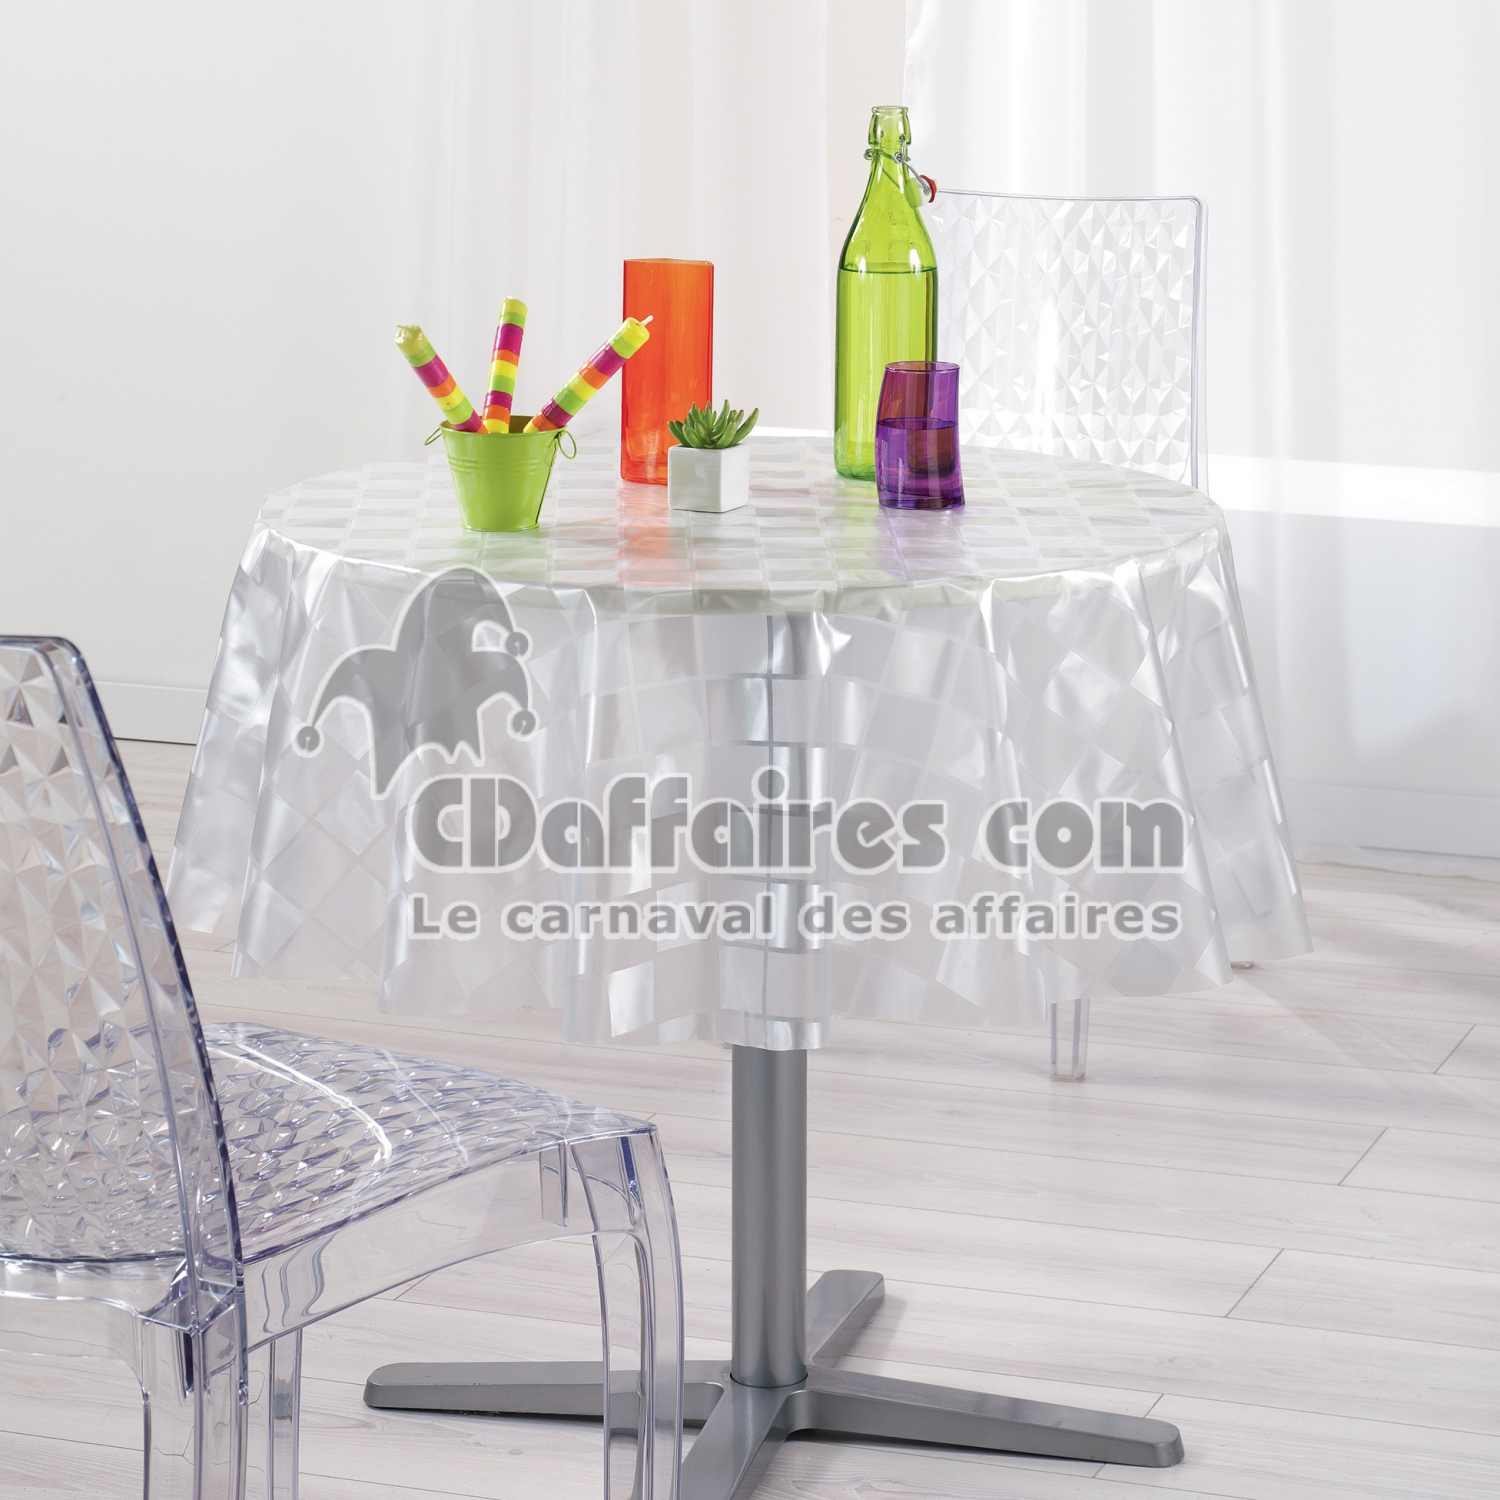 nappe cristal ronde 0 140 cm pvc imprime 18 100e mosa que cdaffaires. Black Bedroom Furniture Sets. Home Design Ideas